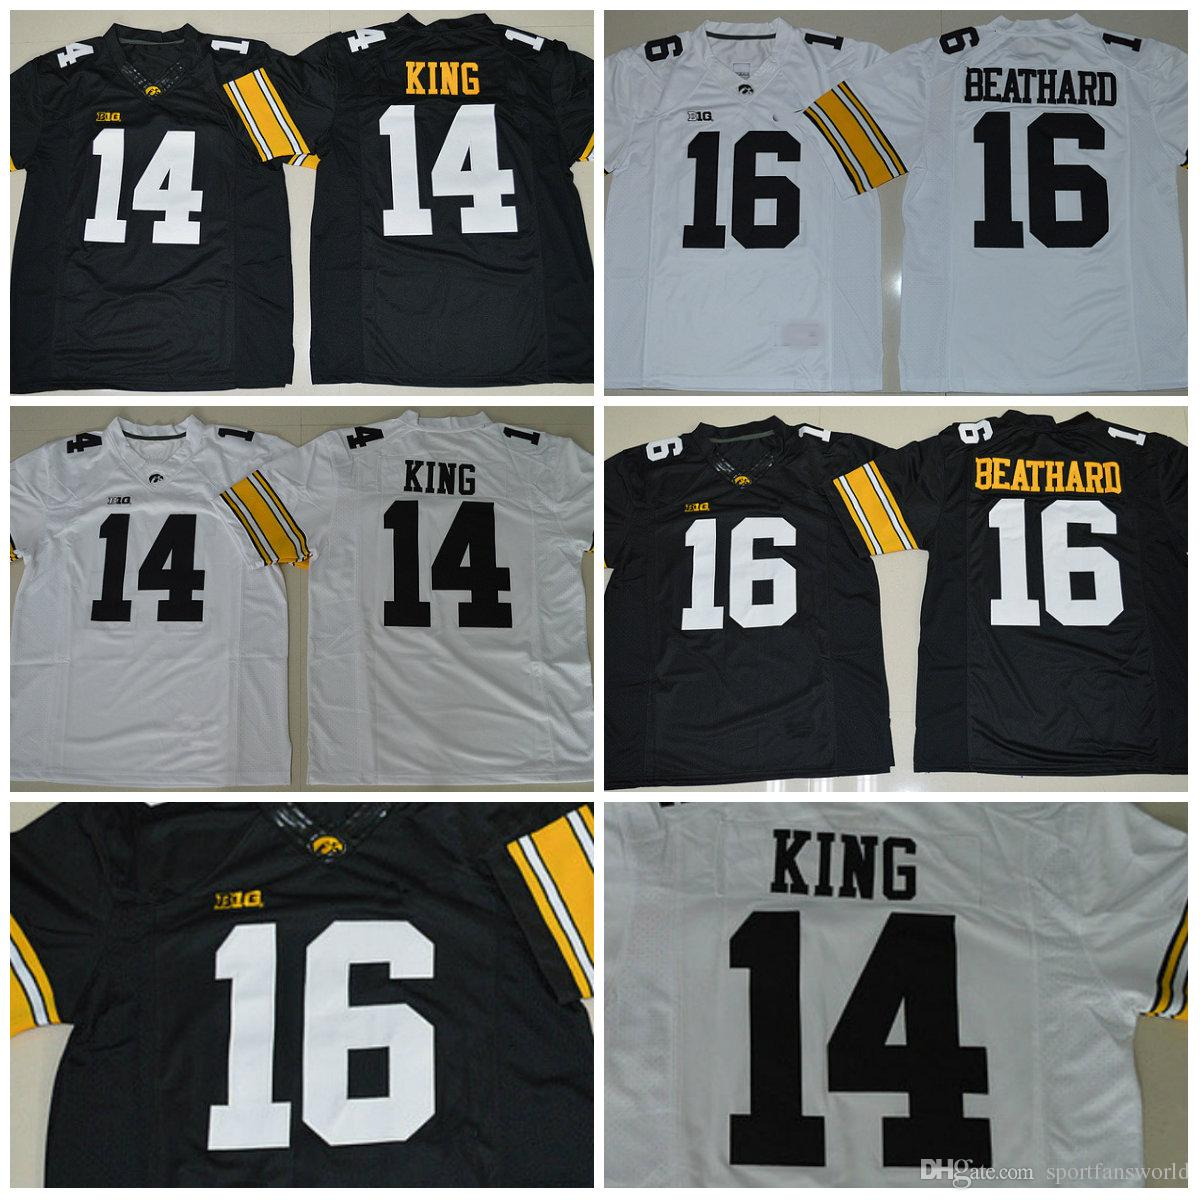 ... college football jerseys white  best quality 2018 new coming iowa  hawkeyes ncaa jersey 16 c.j beathard 14 desmond king gift 6c3ee60fe